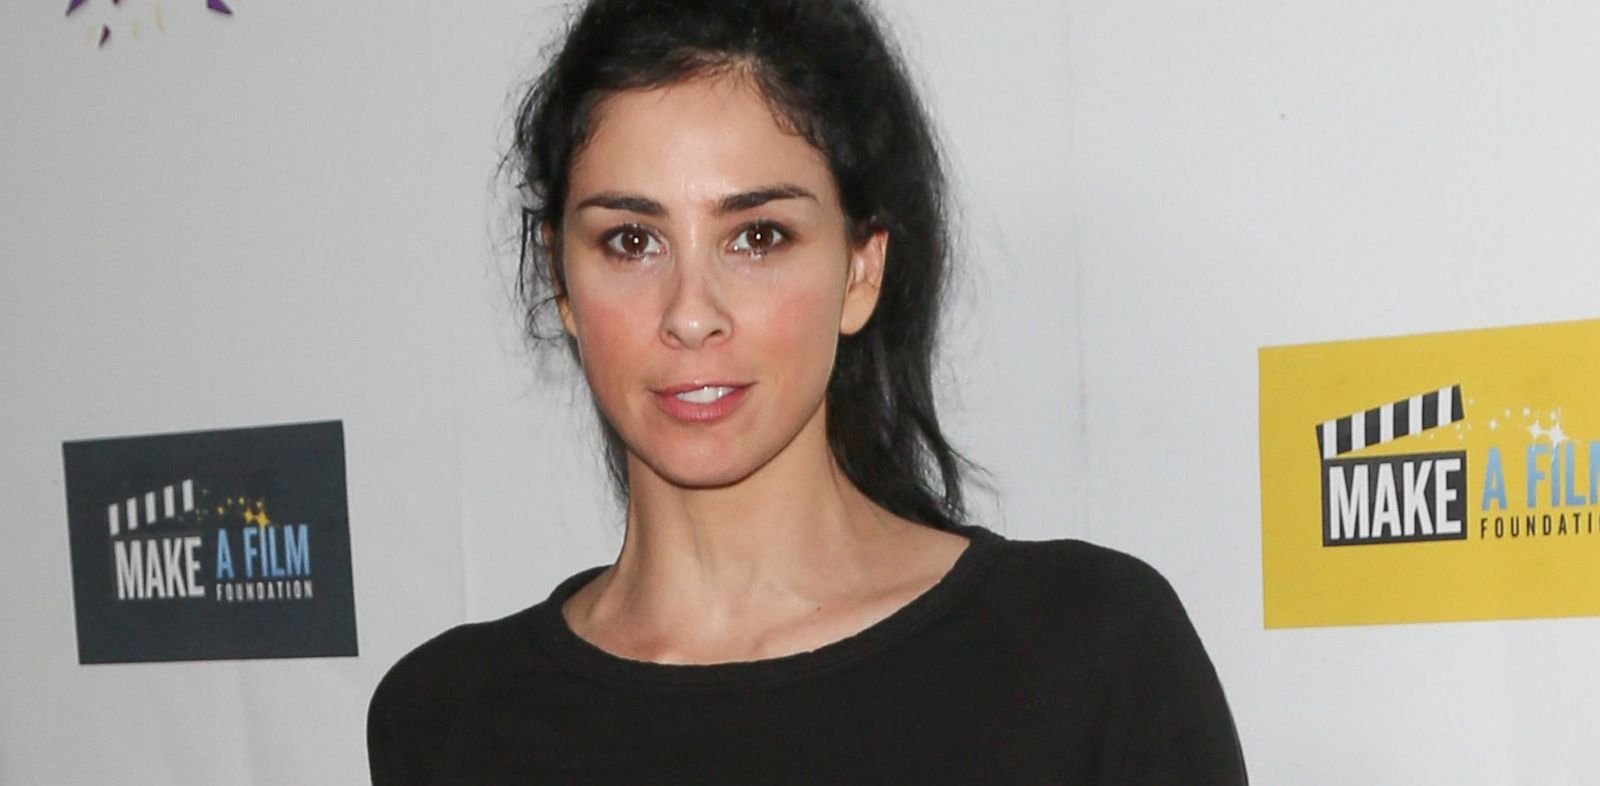 PHOTO: Comedian Sarah Silverman attends the Make A Film Foundations ComedyCon 2013 fundraiser at The Comedy Store on August 30, 2013 in West Hollywood, Calif.